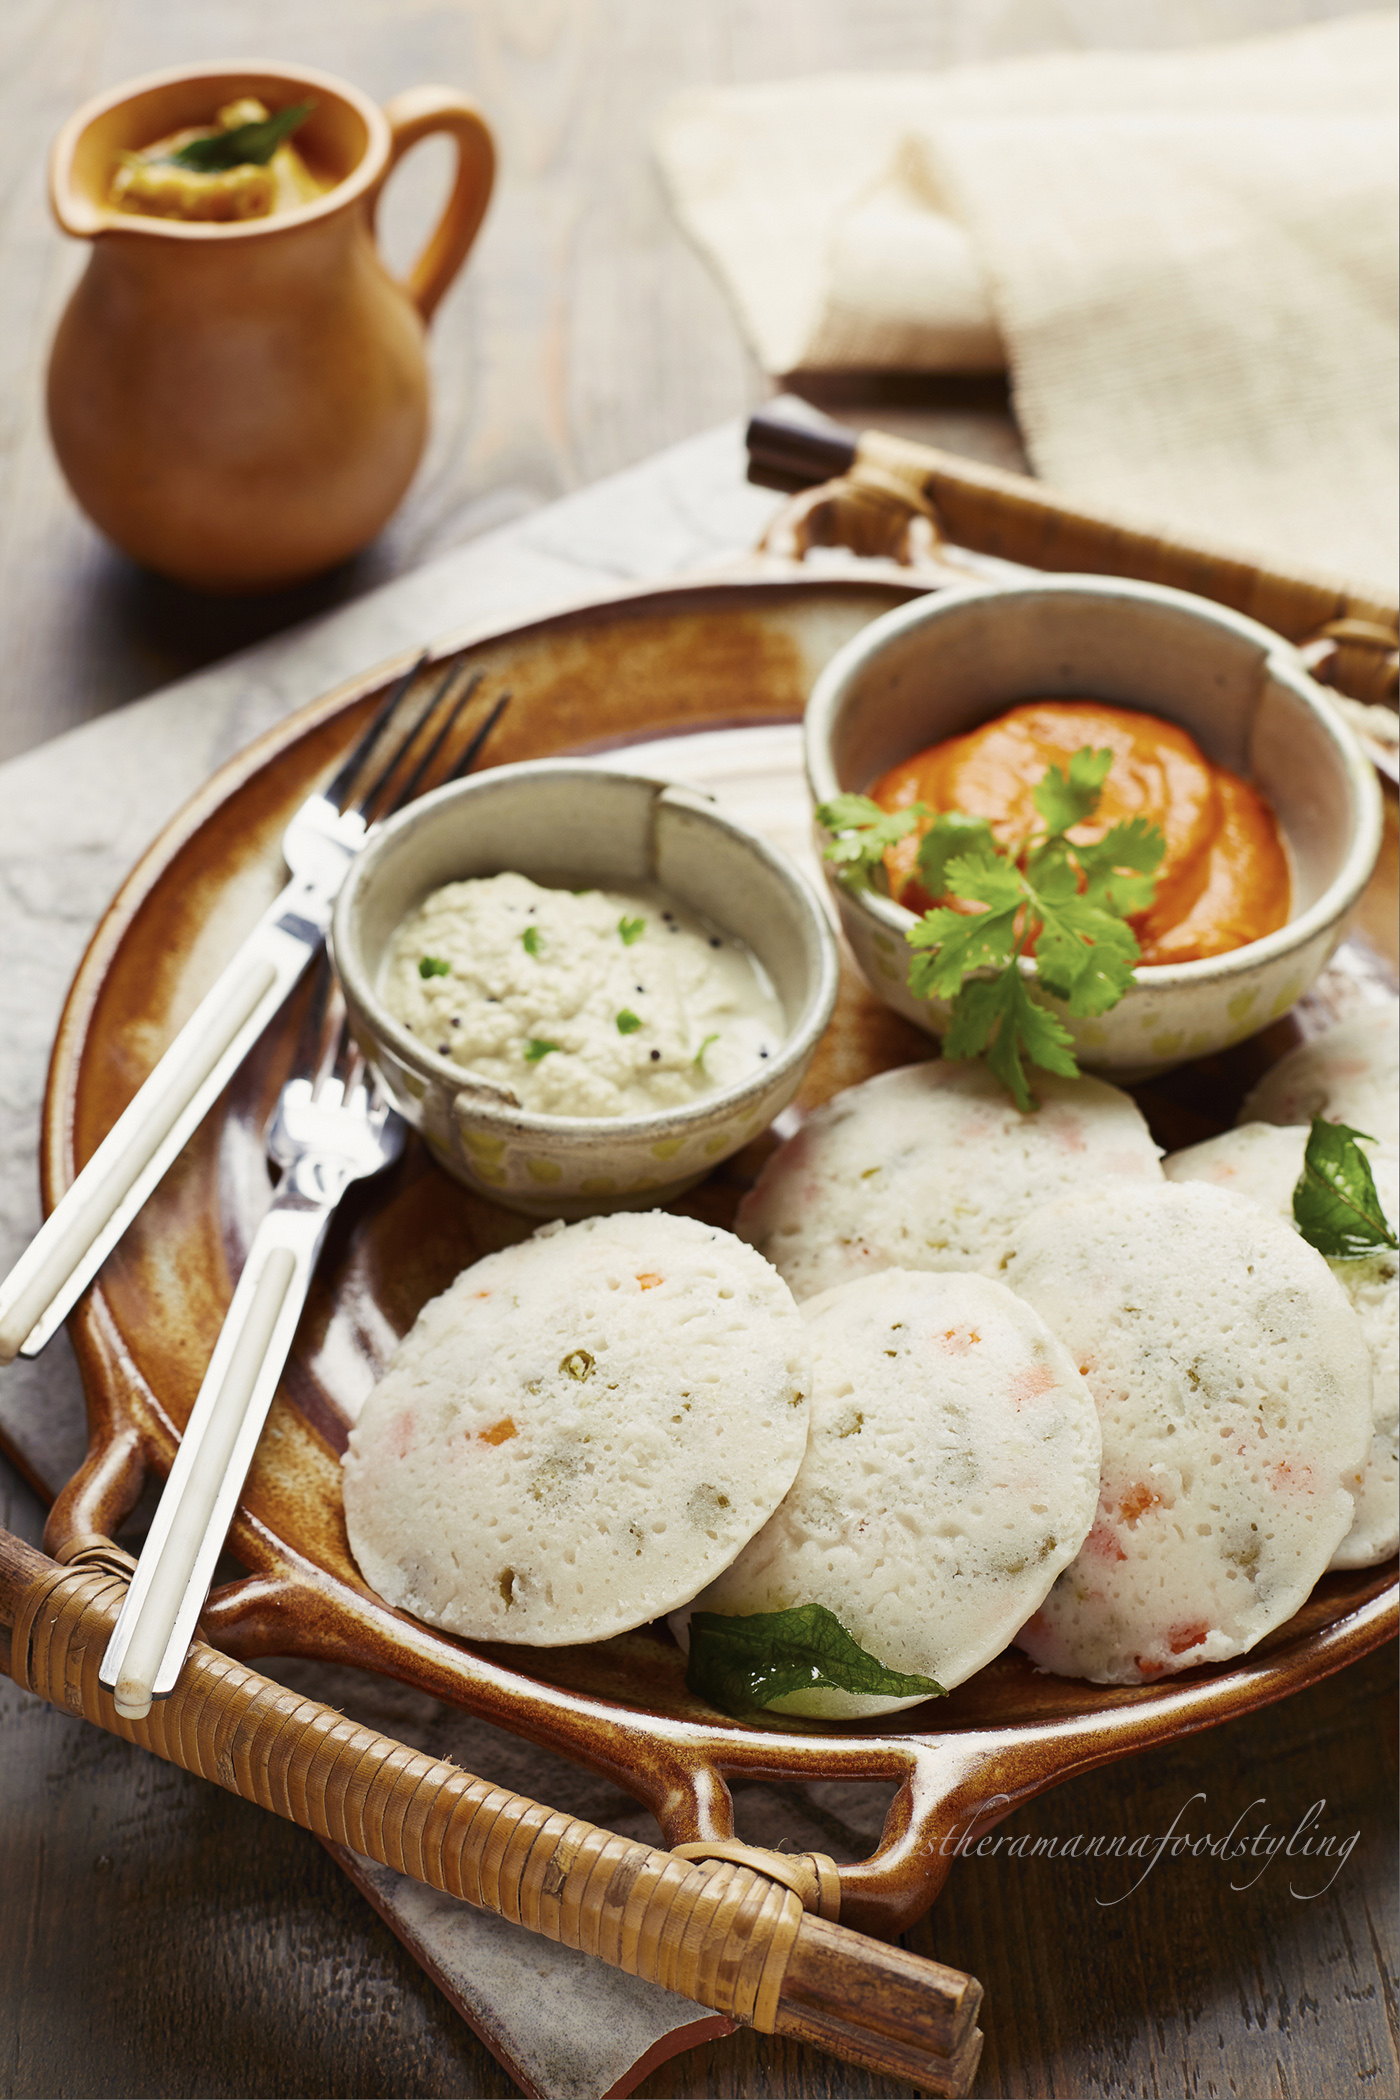 Indian breakfast,Foodstyling for the hotel The Lalit in India for Indian snacks,for the editorial.Foodstylist.